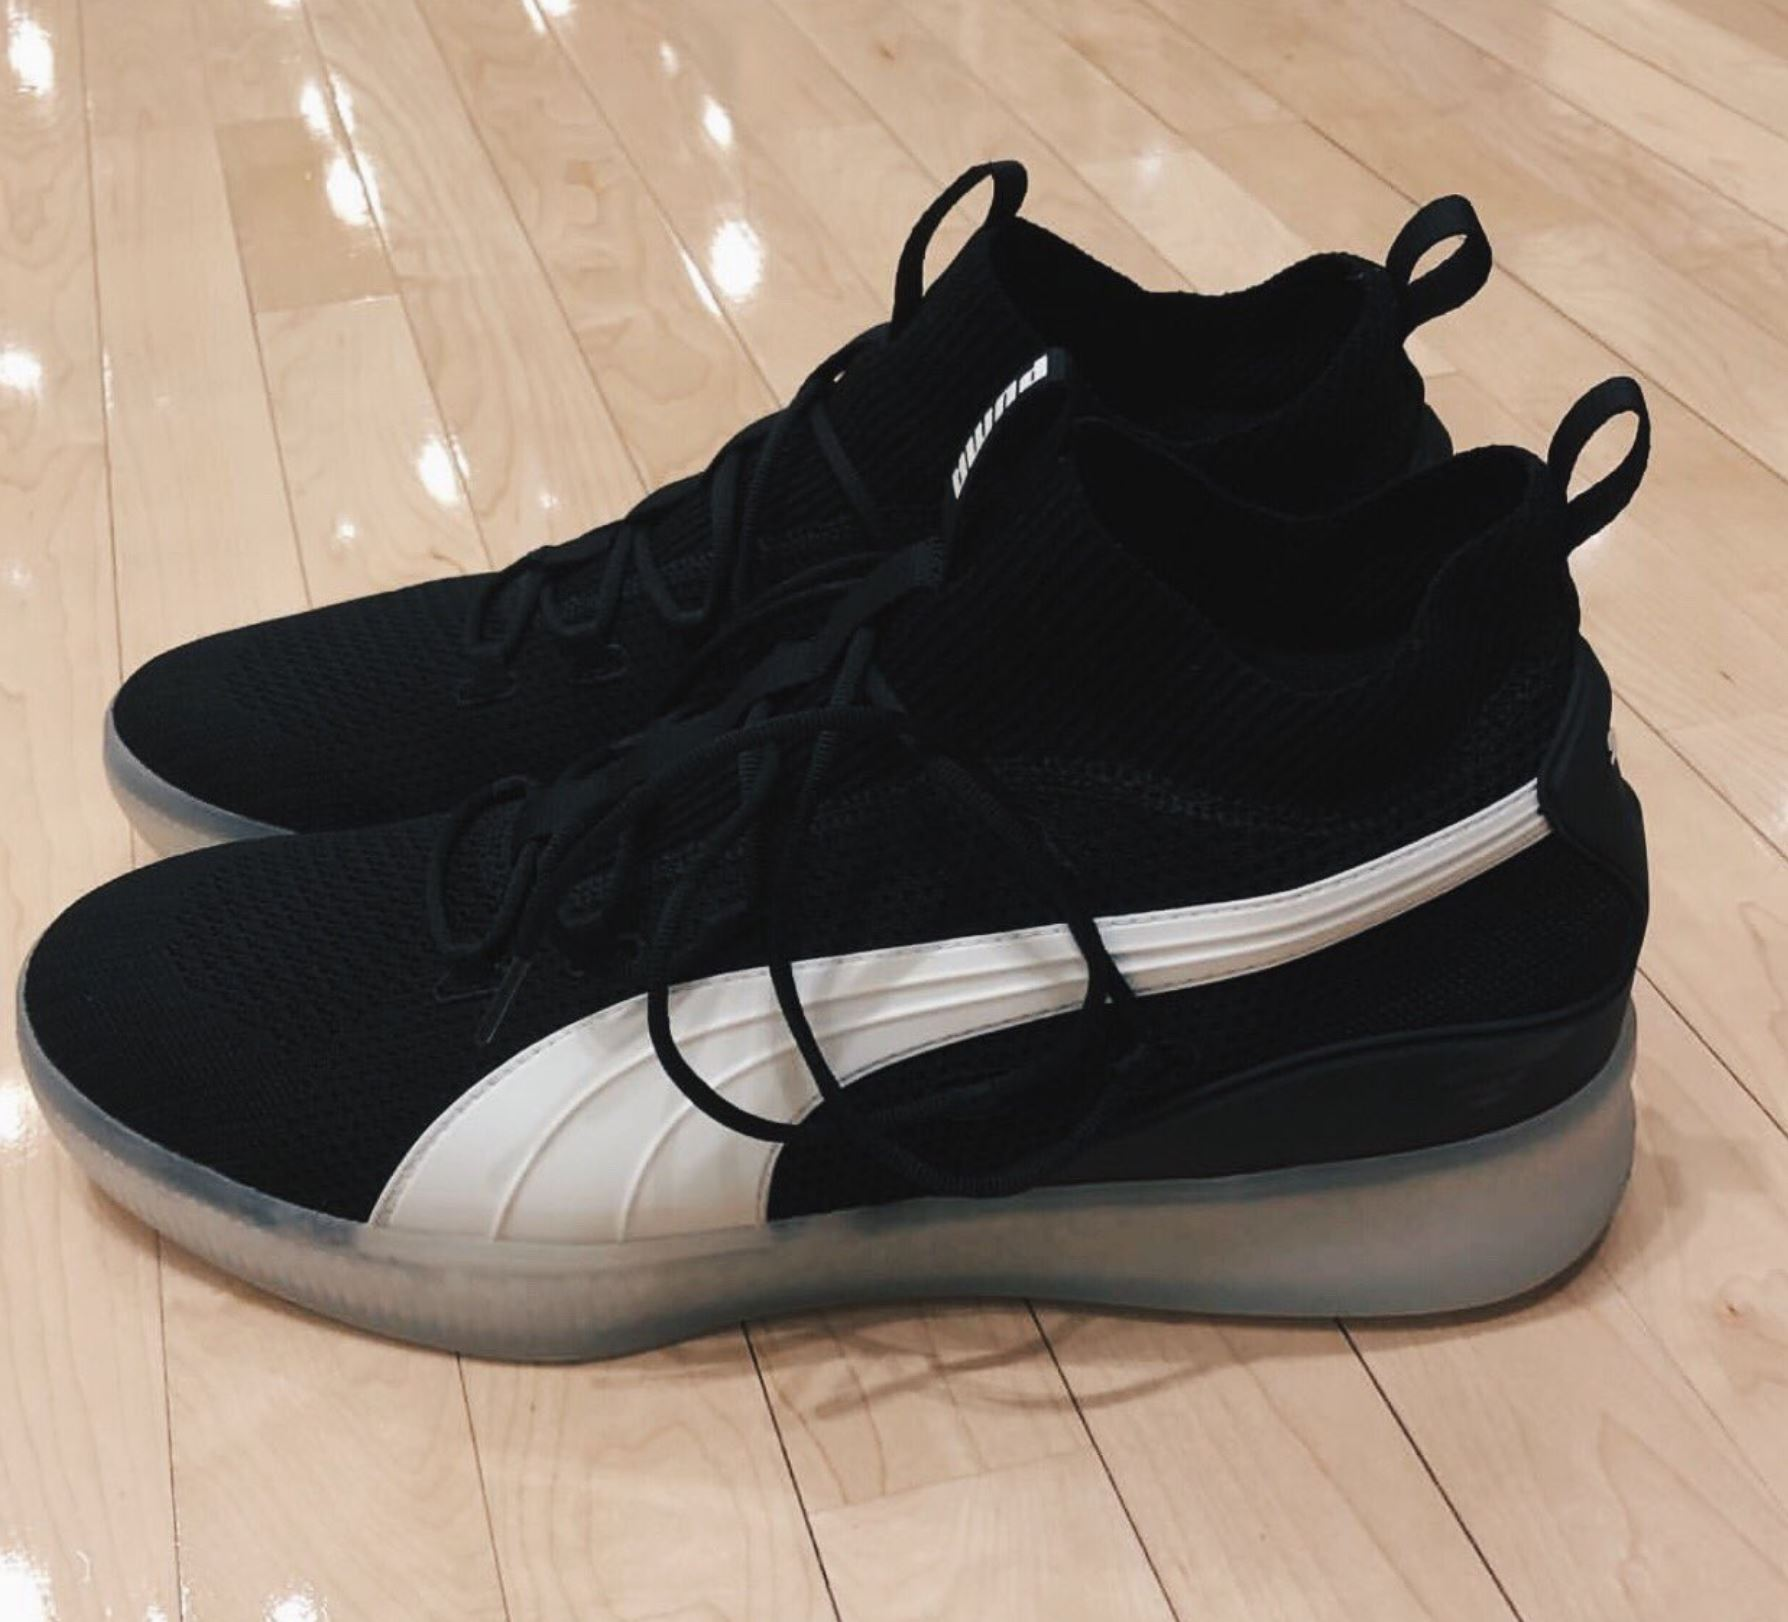 best sneakers 819a0 87ce5 new zealand puma basketball shoes bagley 37a53 399ef